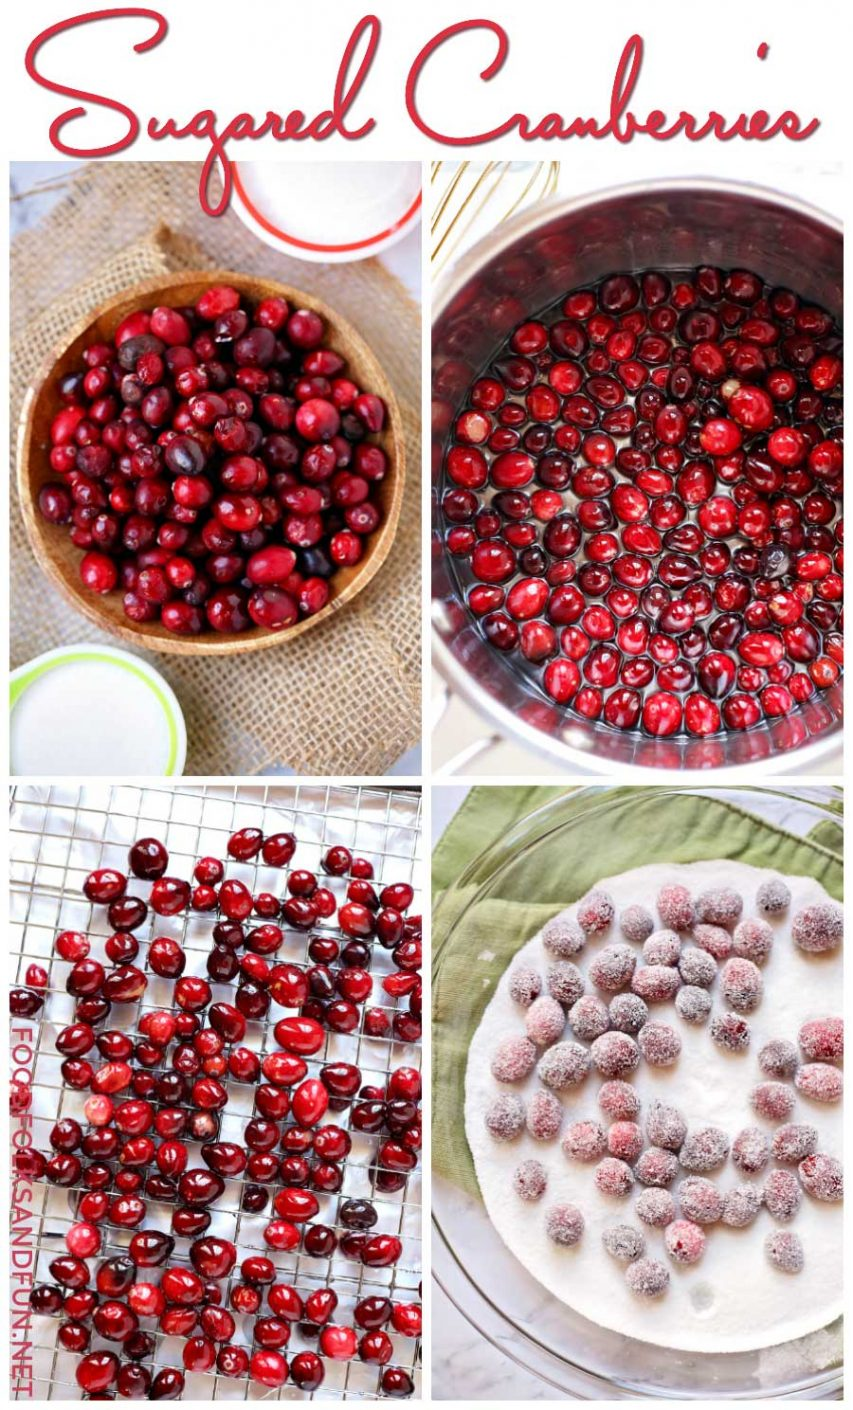 A picture collage of how to make sugared cranberries.